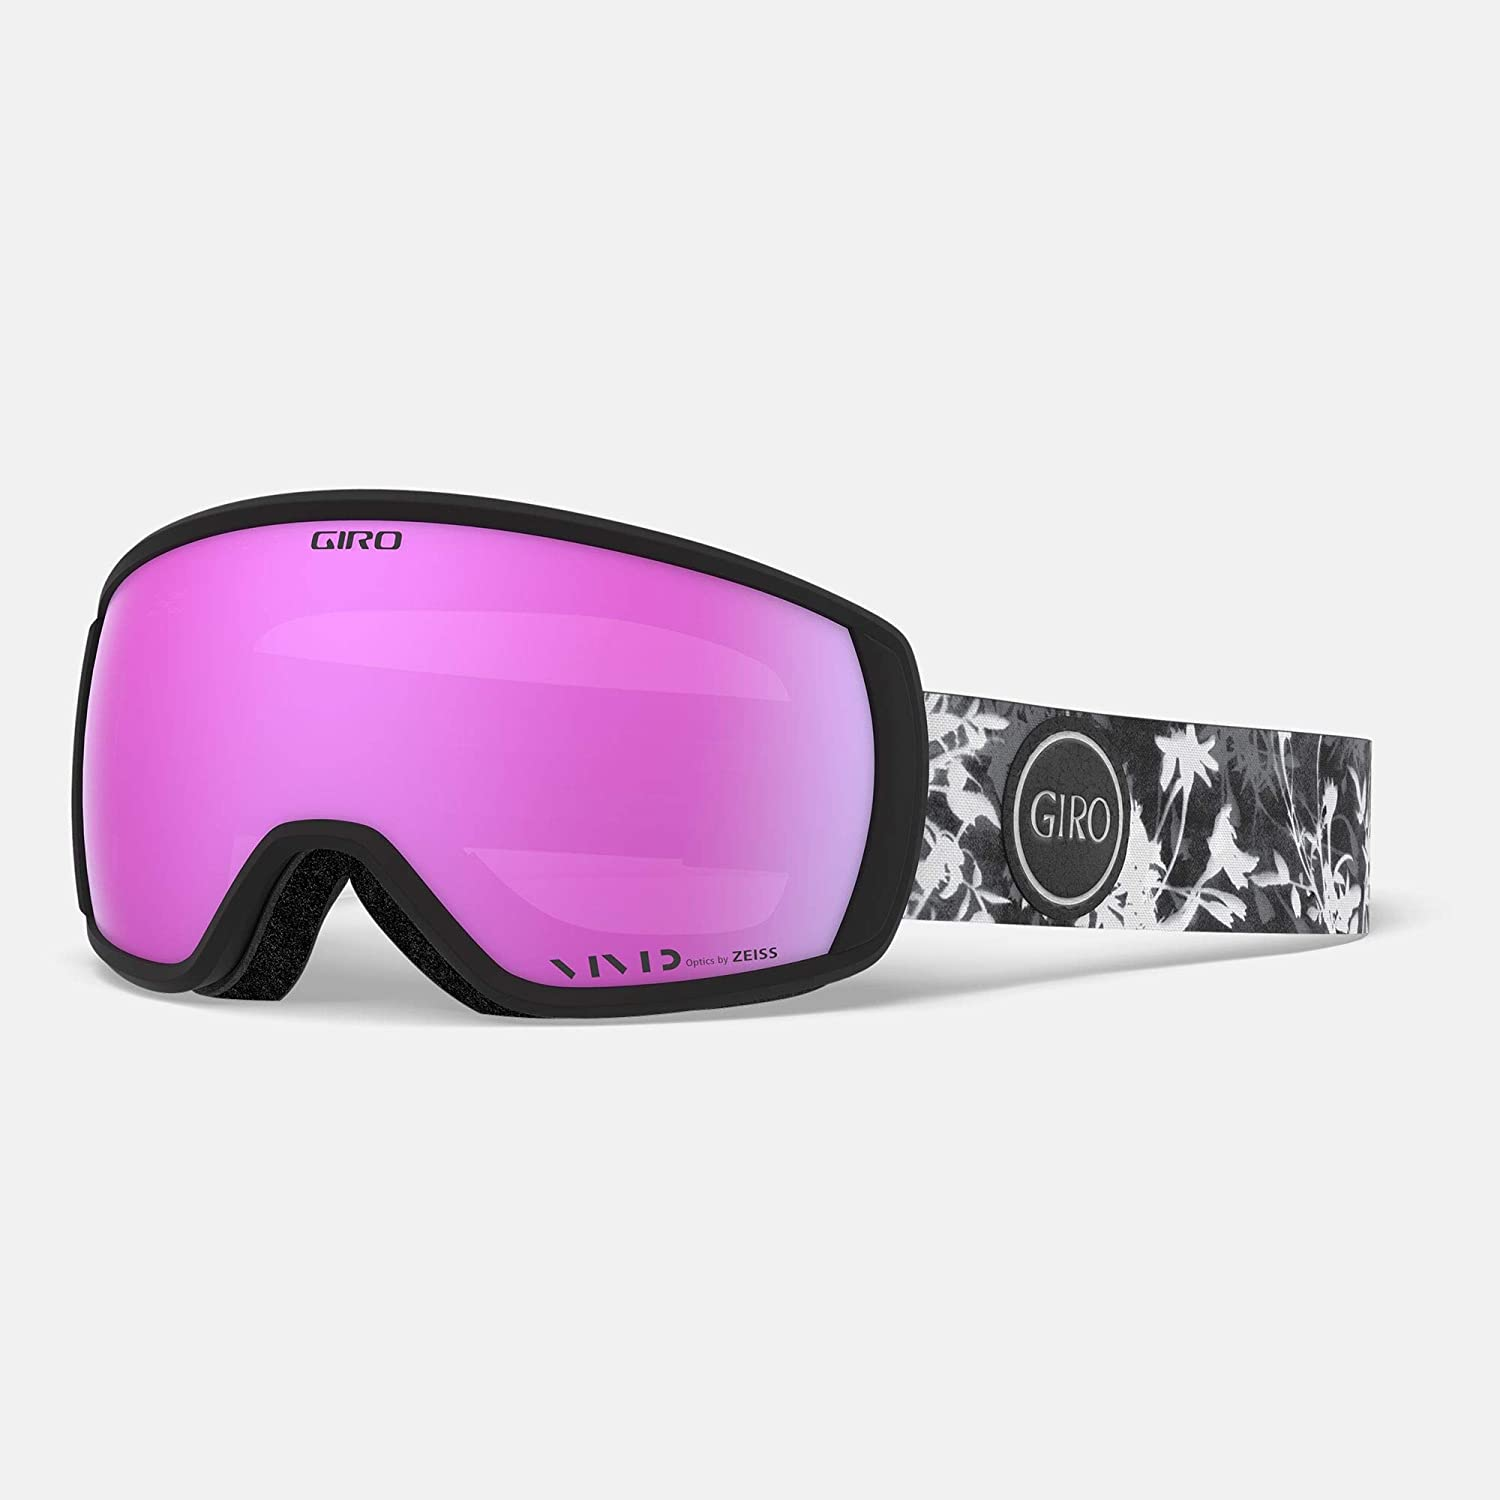 Giro Facet Womens Snow Goggles - Sun Print Strap with Vivid Pink Lens (2020)